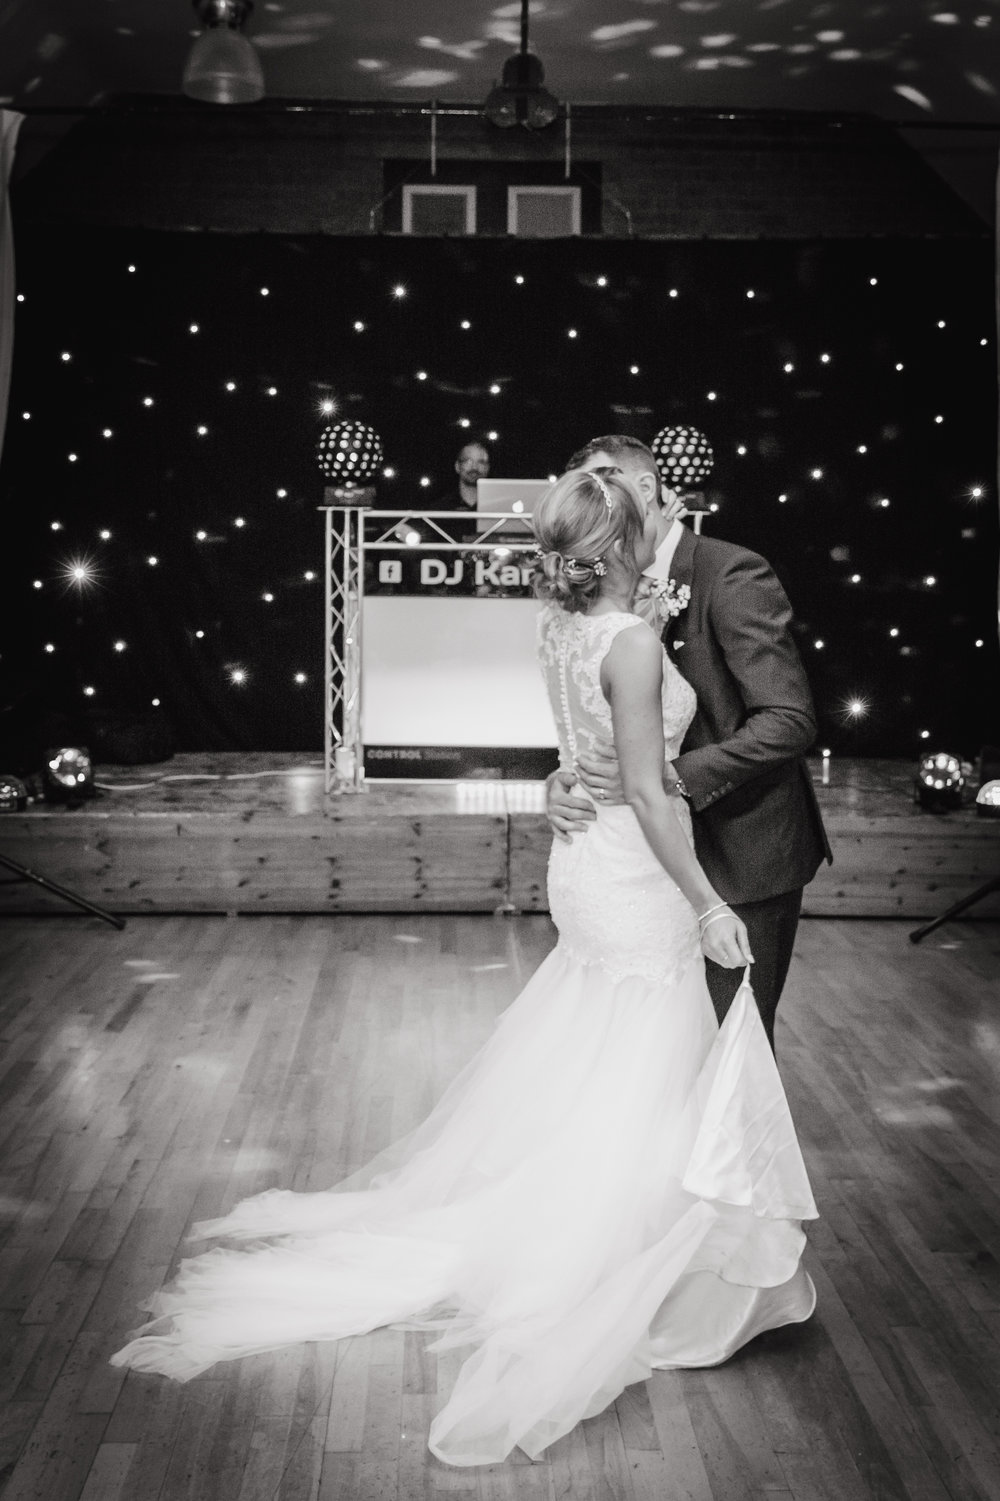 Candid wedding photography Uttoxeter. Claire Meldrum Photography